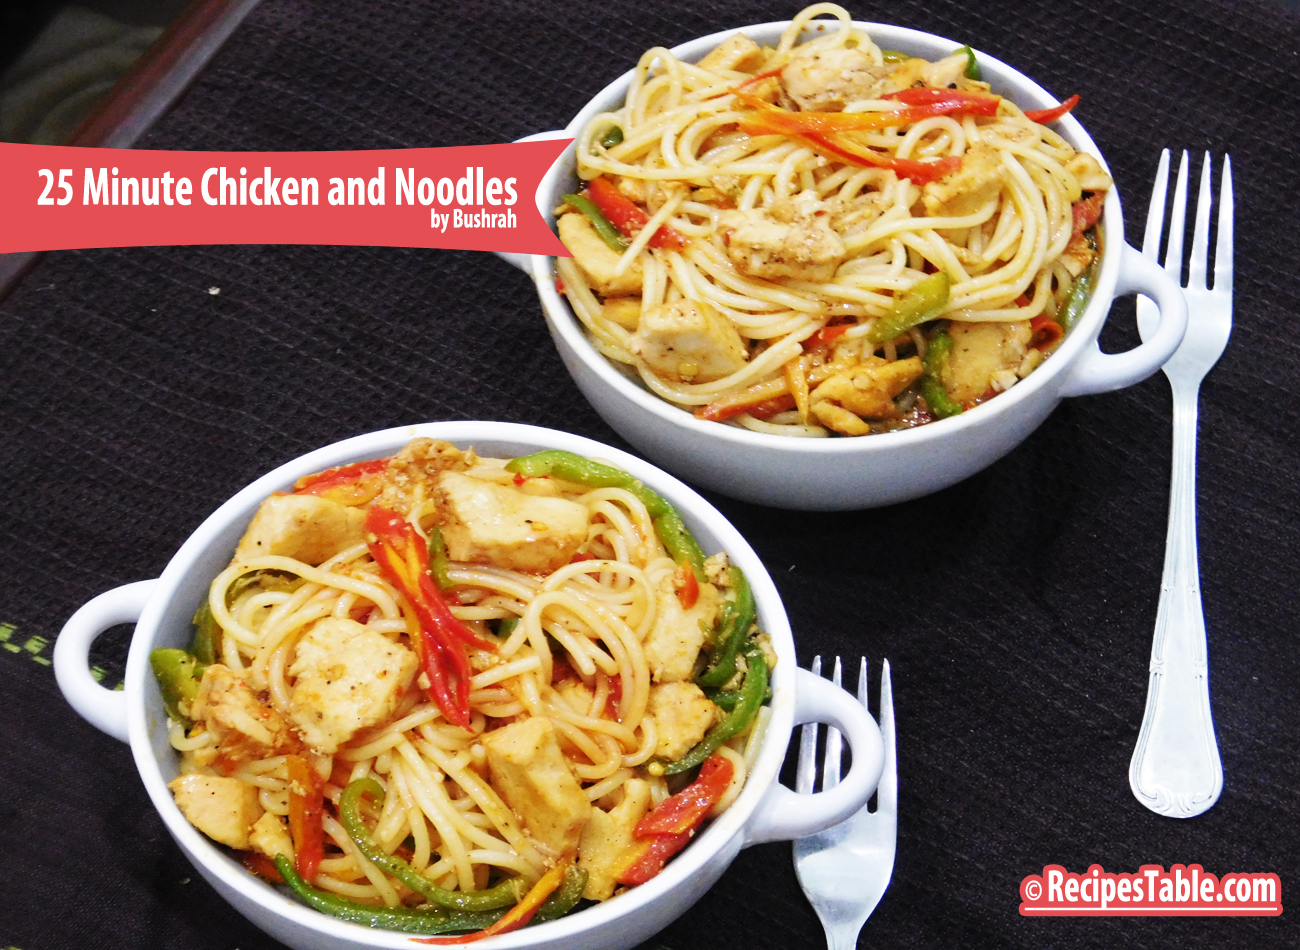 25 Minute Chicken and Noodles